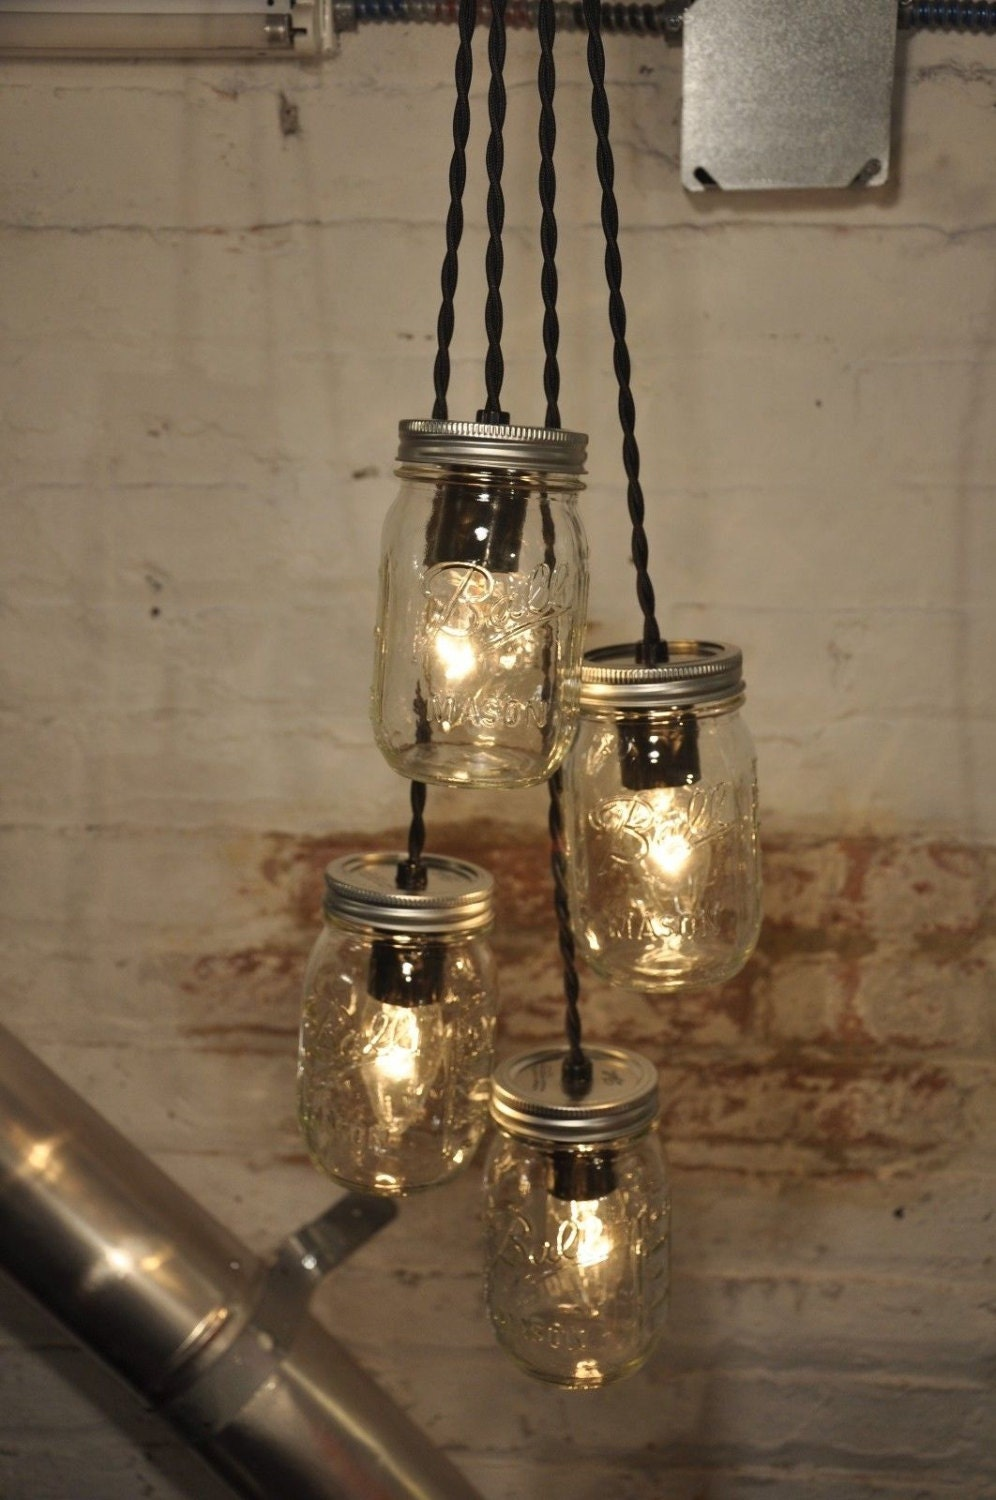 4 mason jar chandelier pendant light fixture beautiful rustic industrial aloadofball Image collections